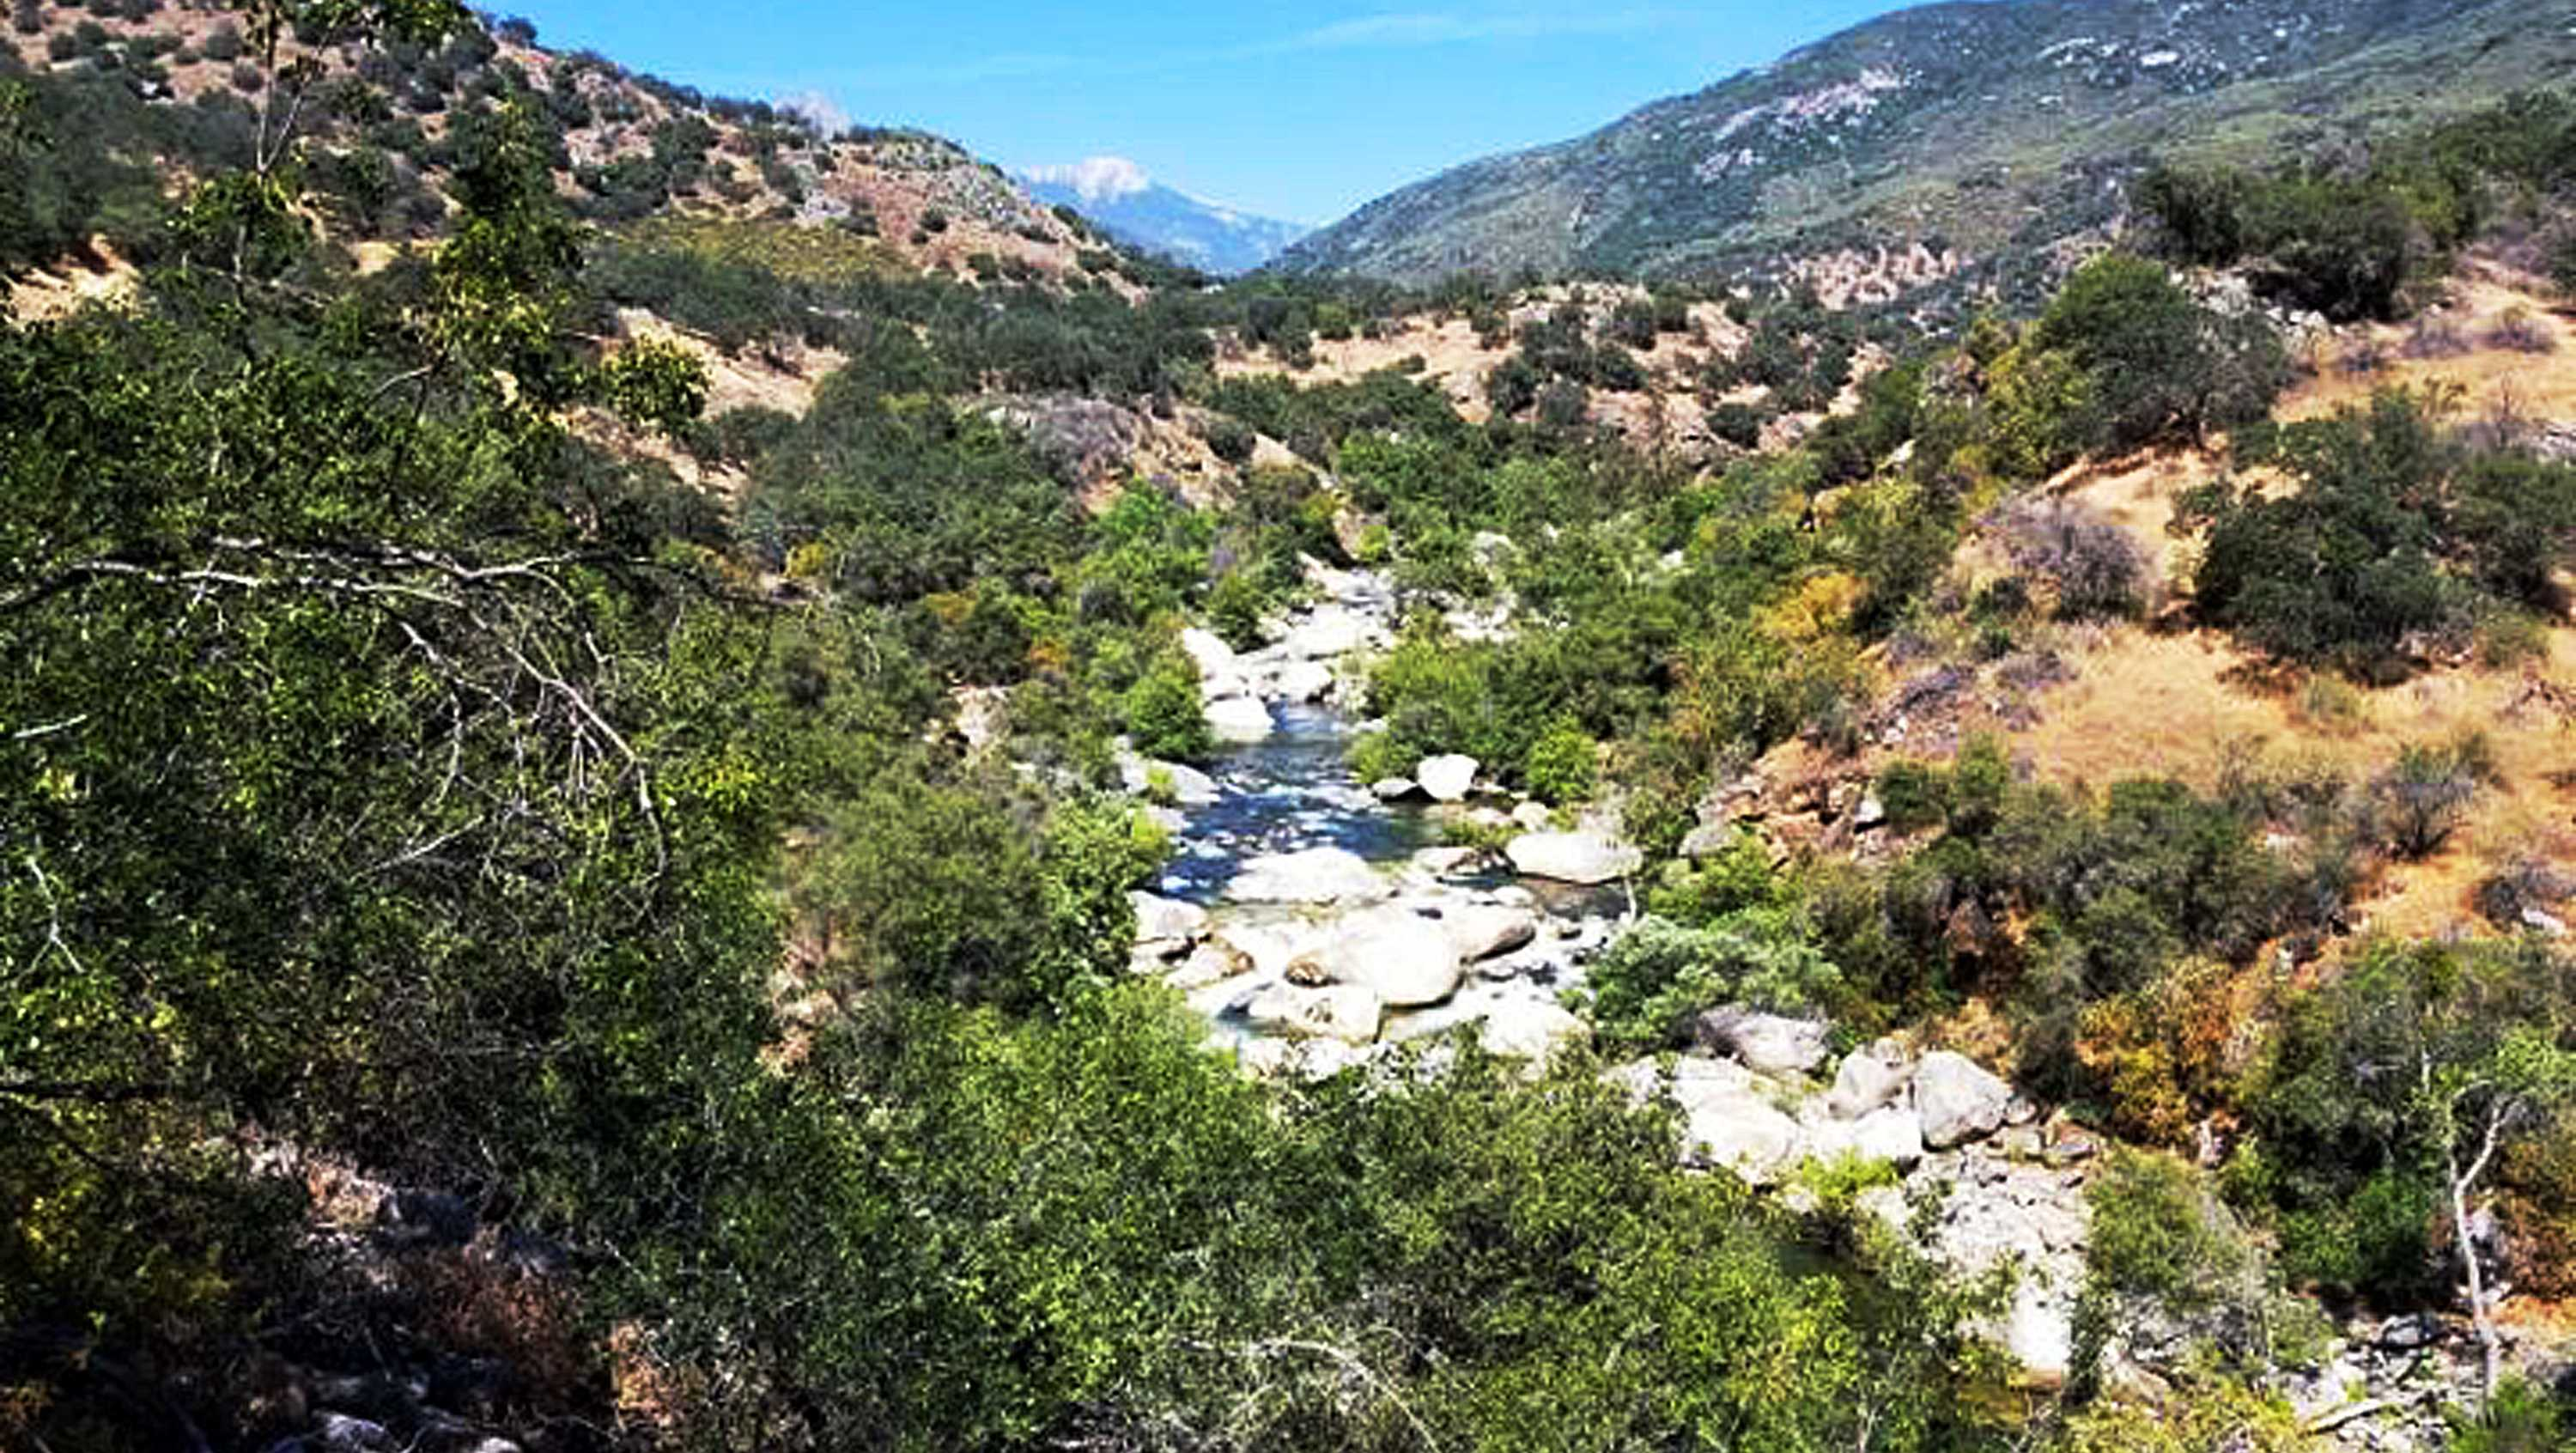 Kaweah River inthe  Sequoia National Park in California's Sierra Nevada